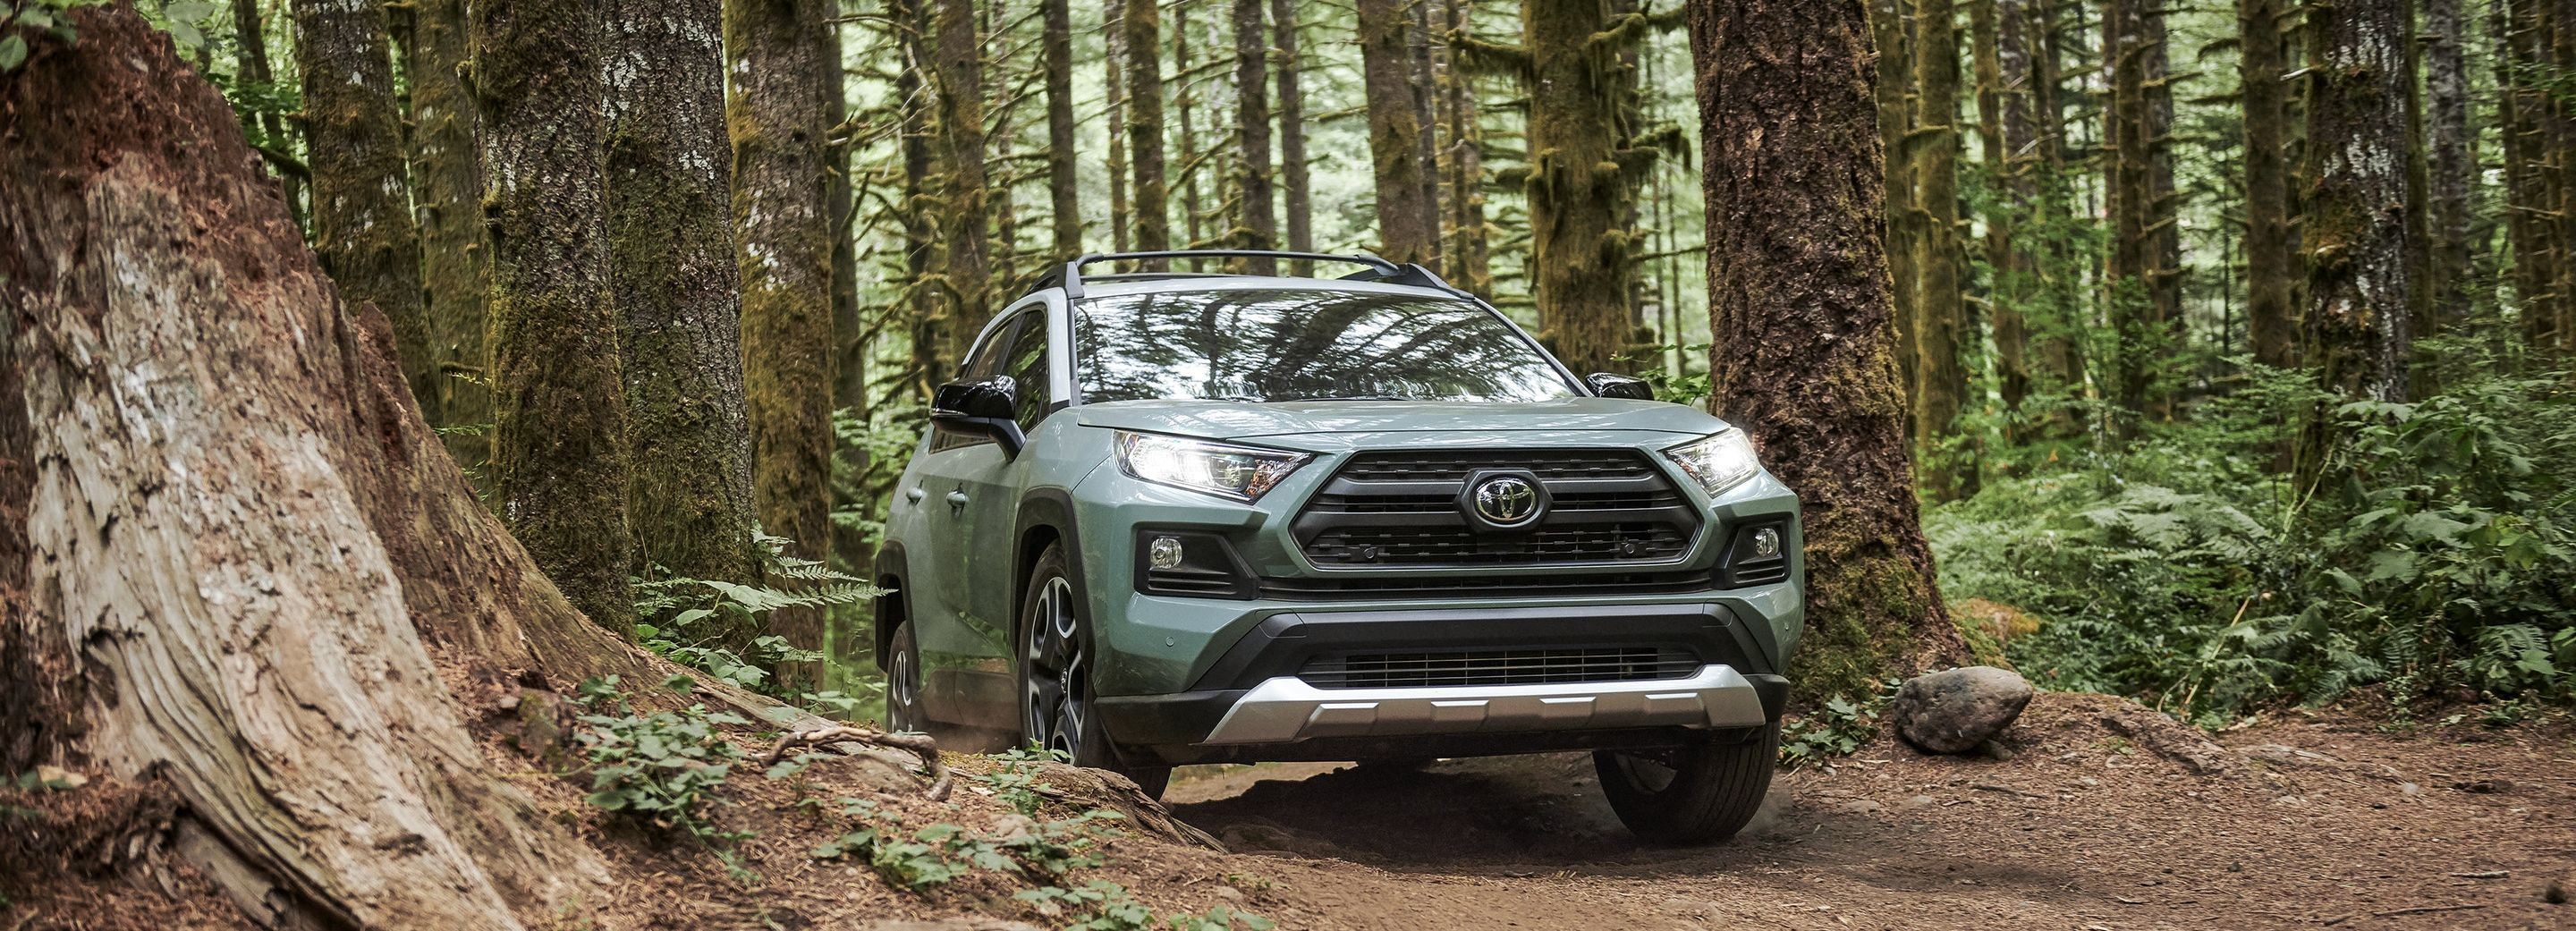 What's New for the 2019 RAV4?